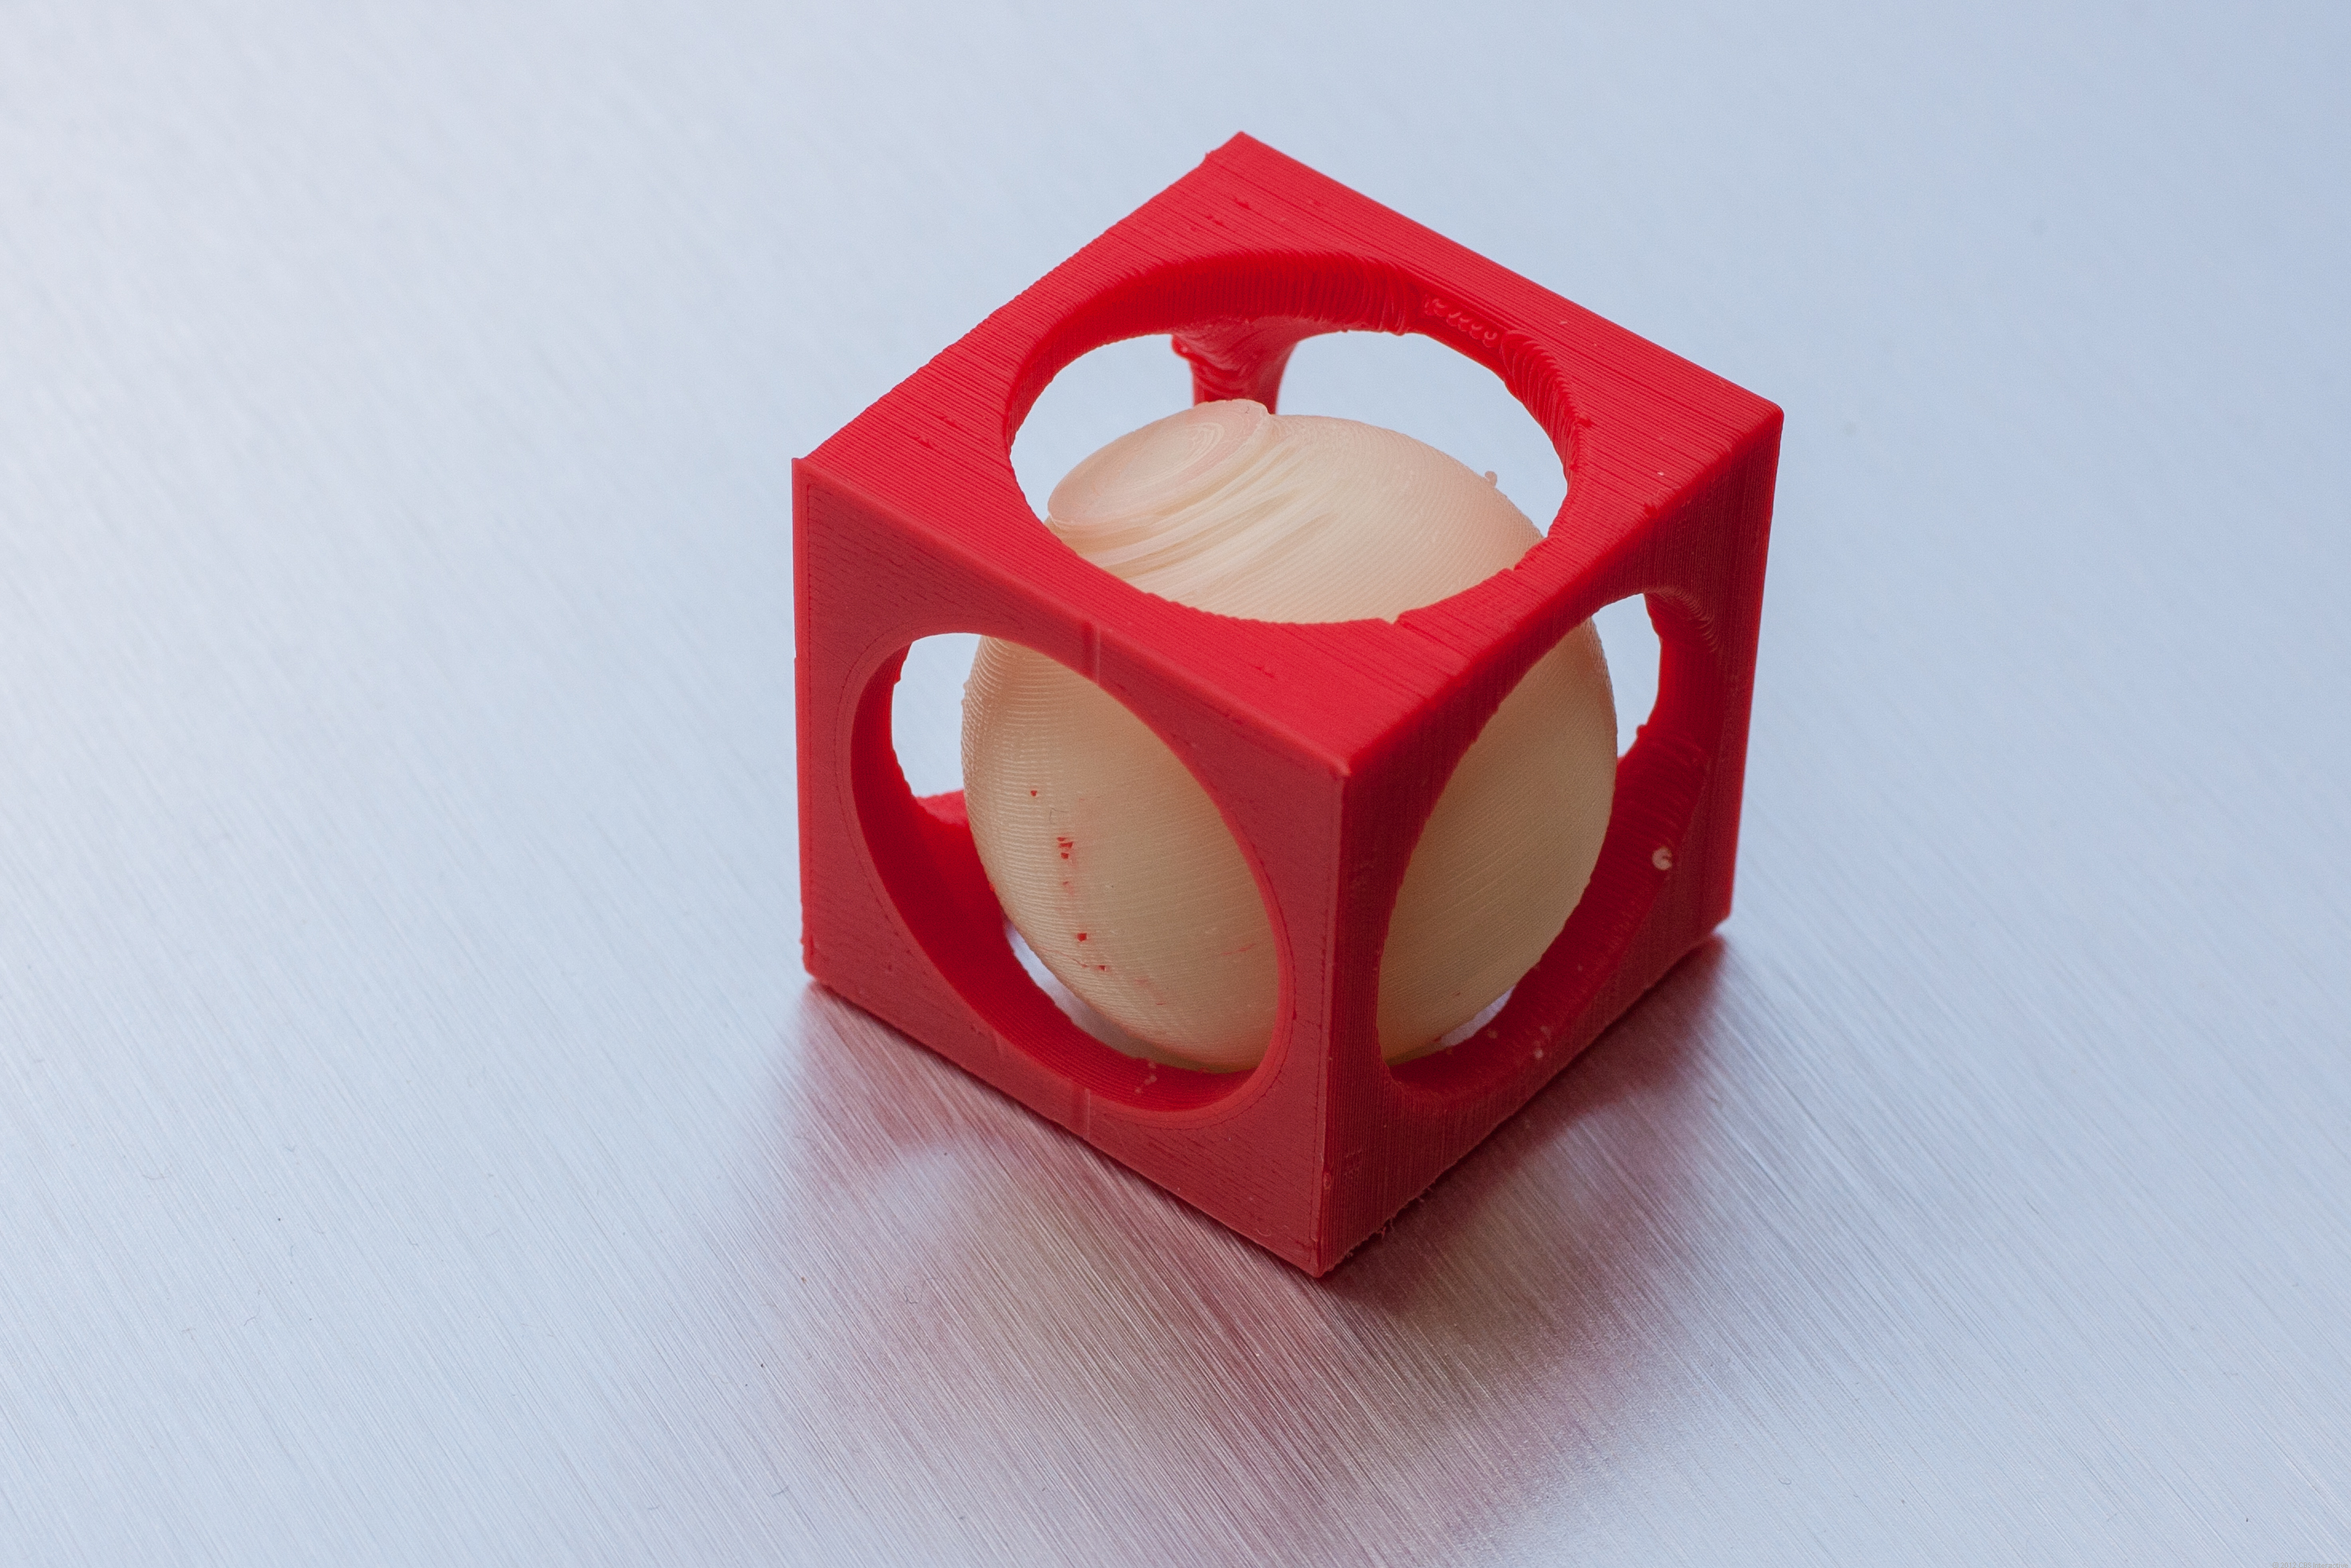 Dualstrustion Ball in Cube